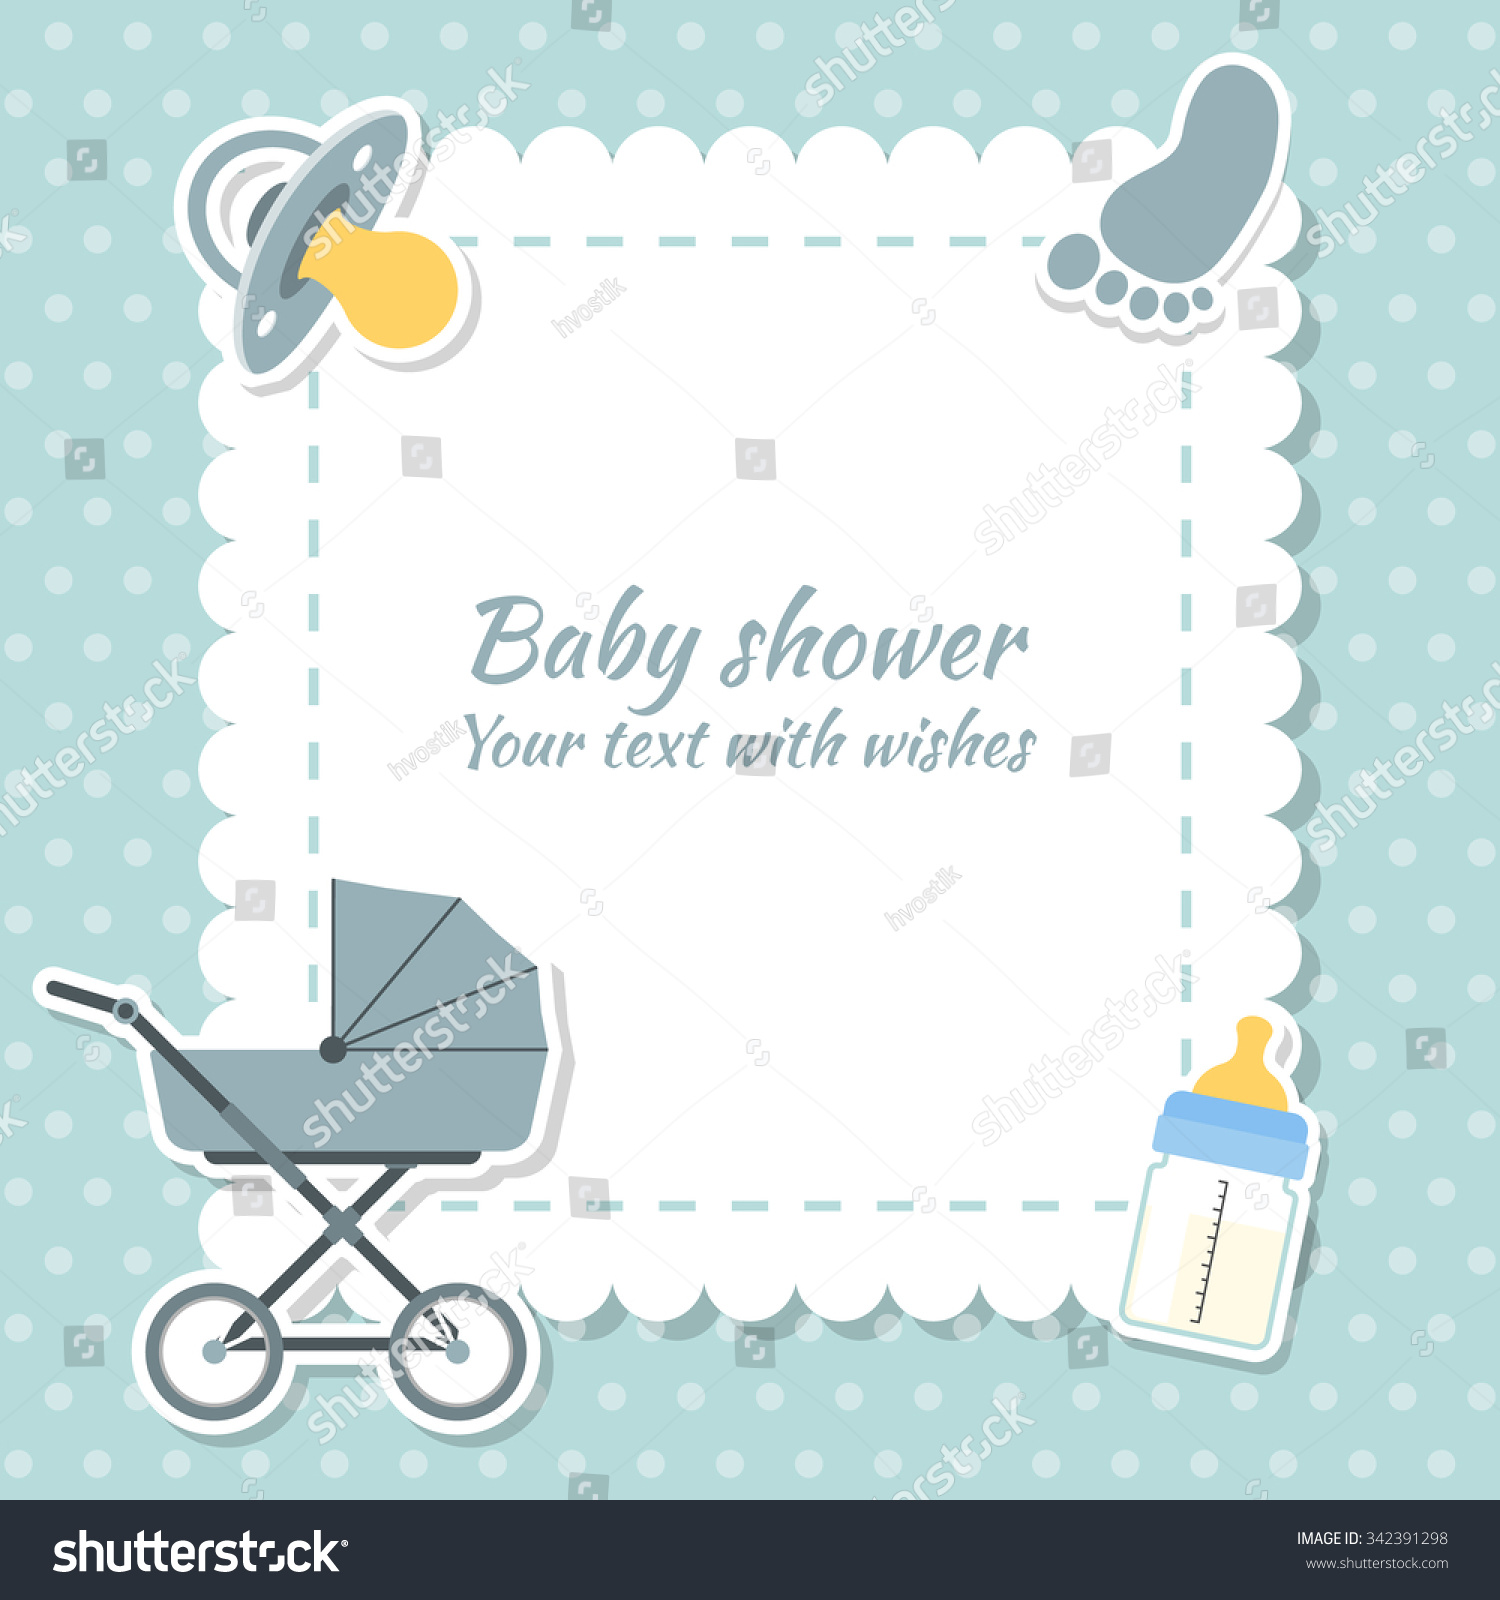 baby shower place cards template - baby shower boy invitation card place stock vector